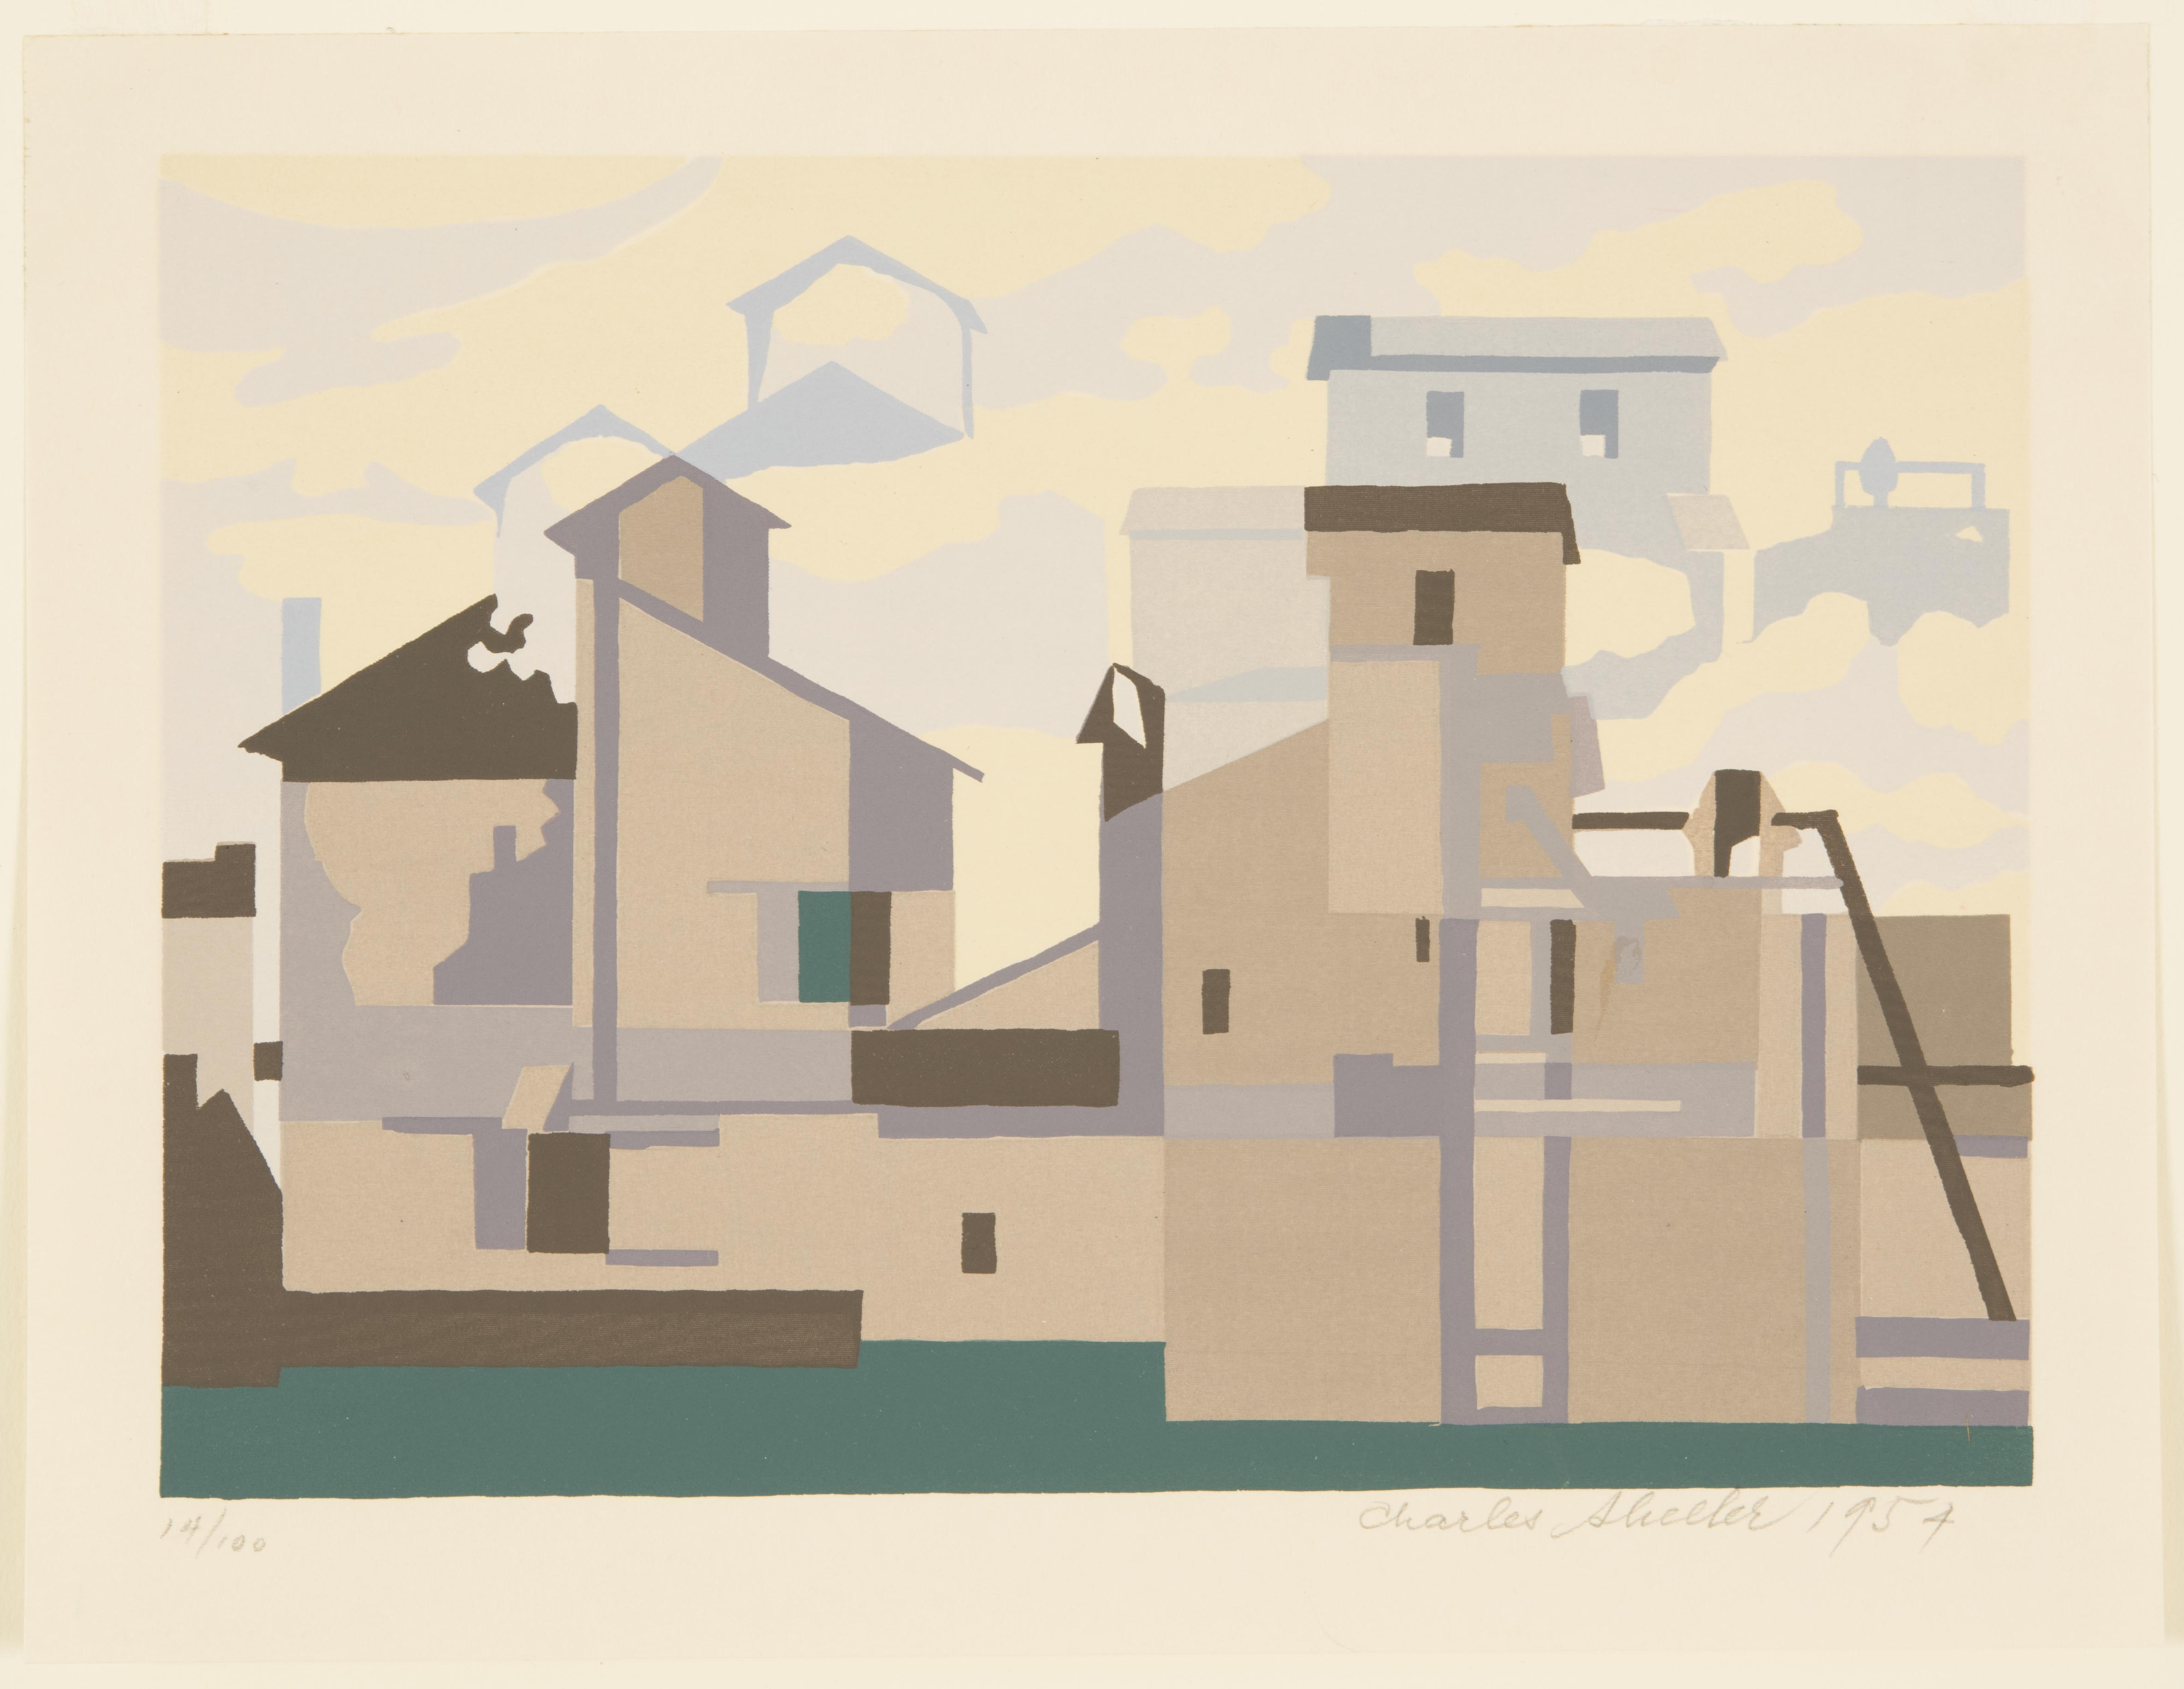 Charles Sheeler, Architectural Cadence, 1954